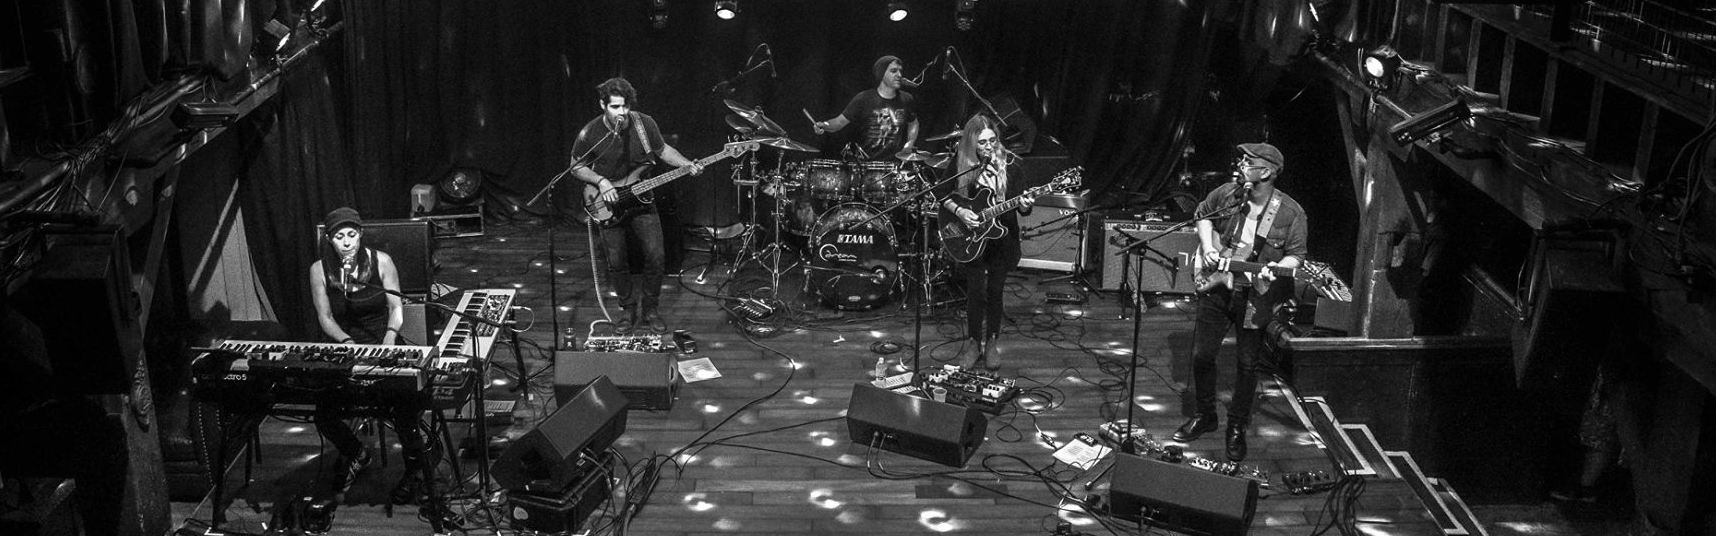 Ghost Light shares Pro-shot video live from Echo Mountain Recording Studios in Asheville, NC.